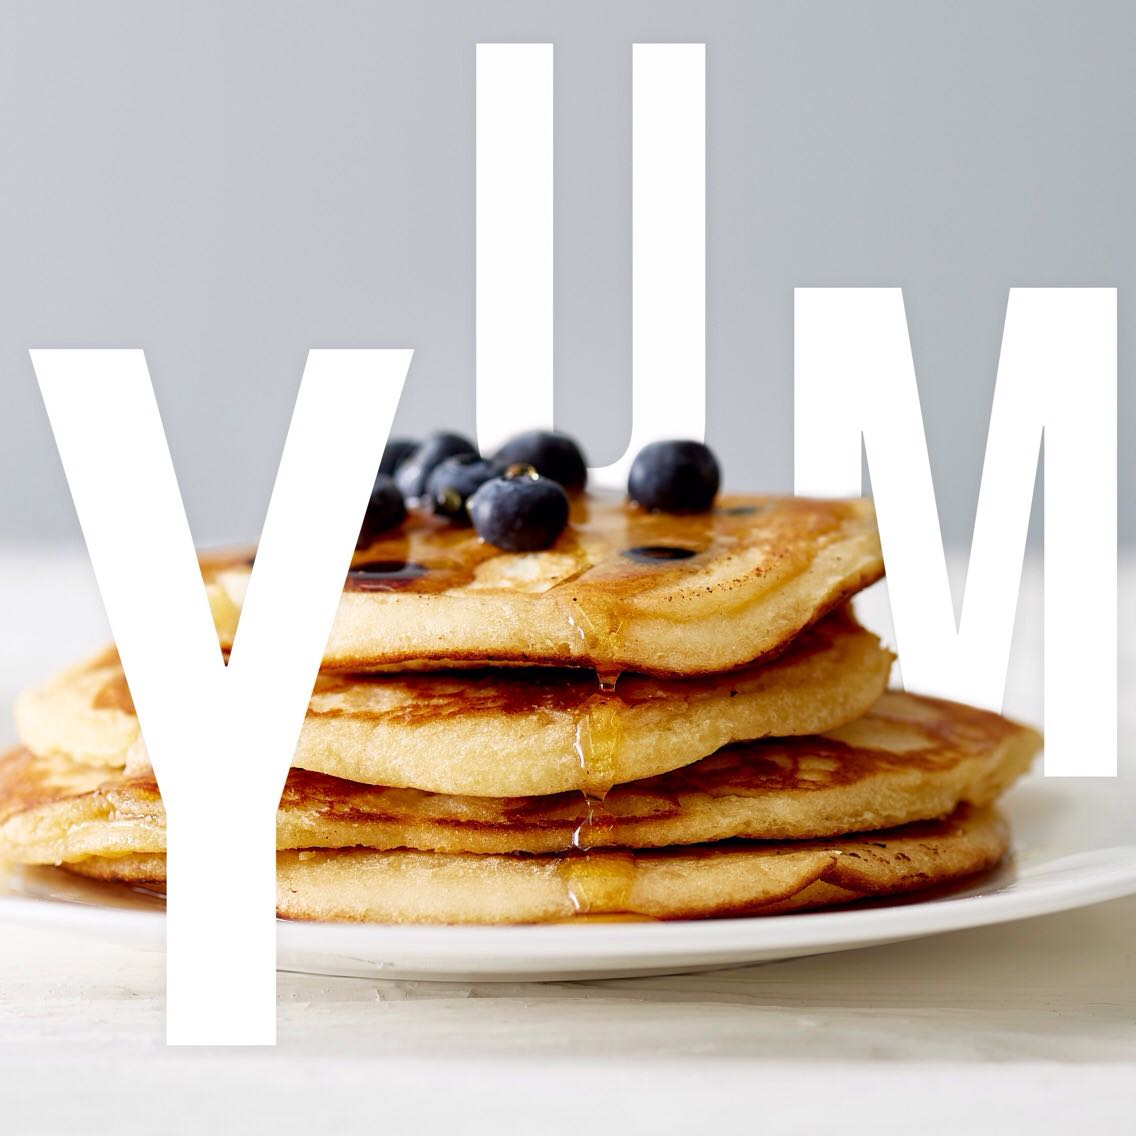 YUM PANCAKES - Social media photography with integrated text for the NOBLE Instagram posted on pancake day.